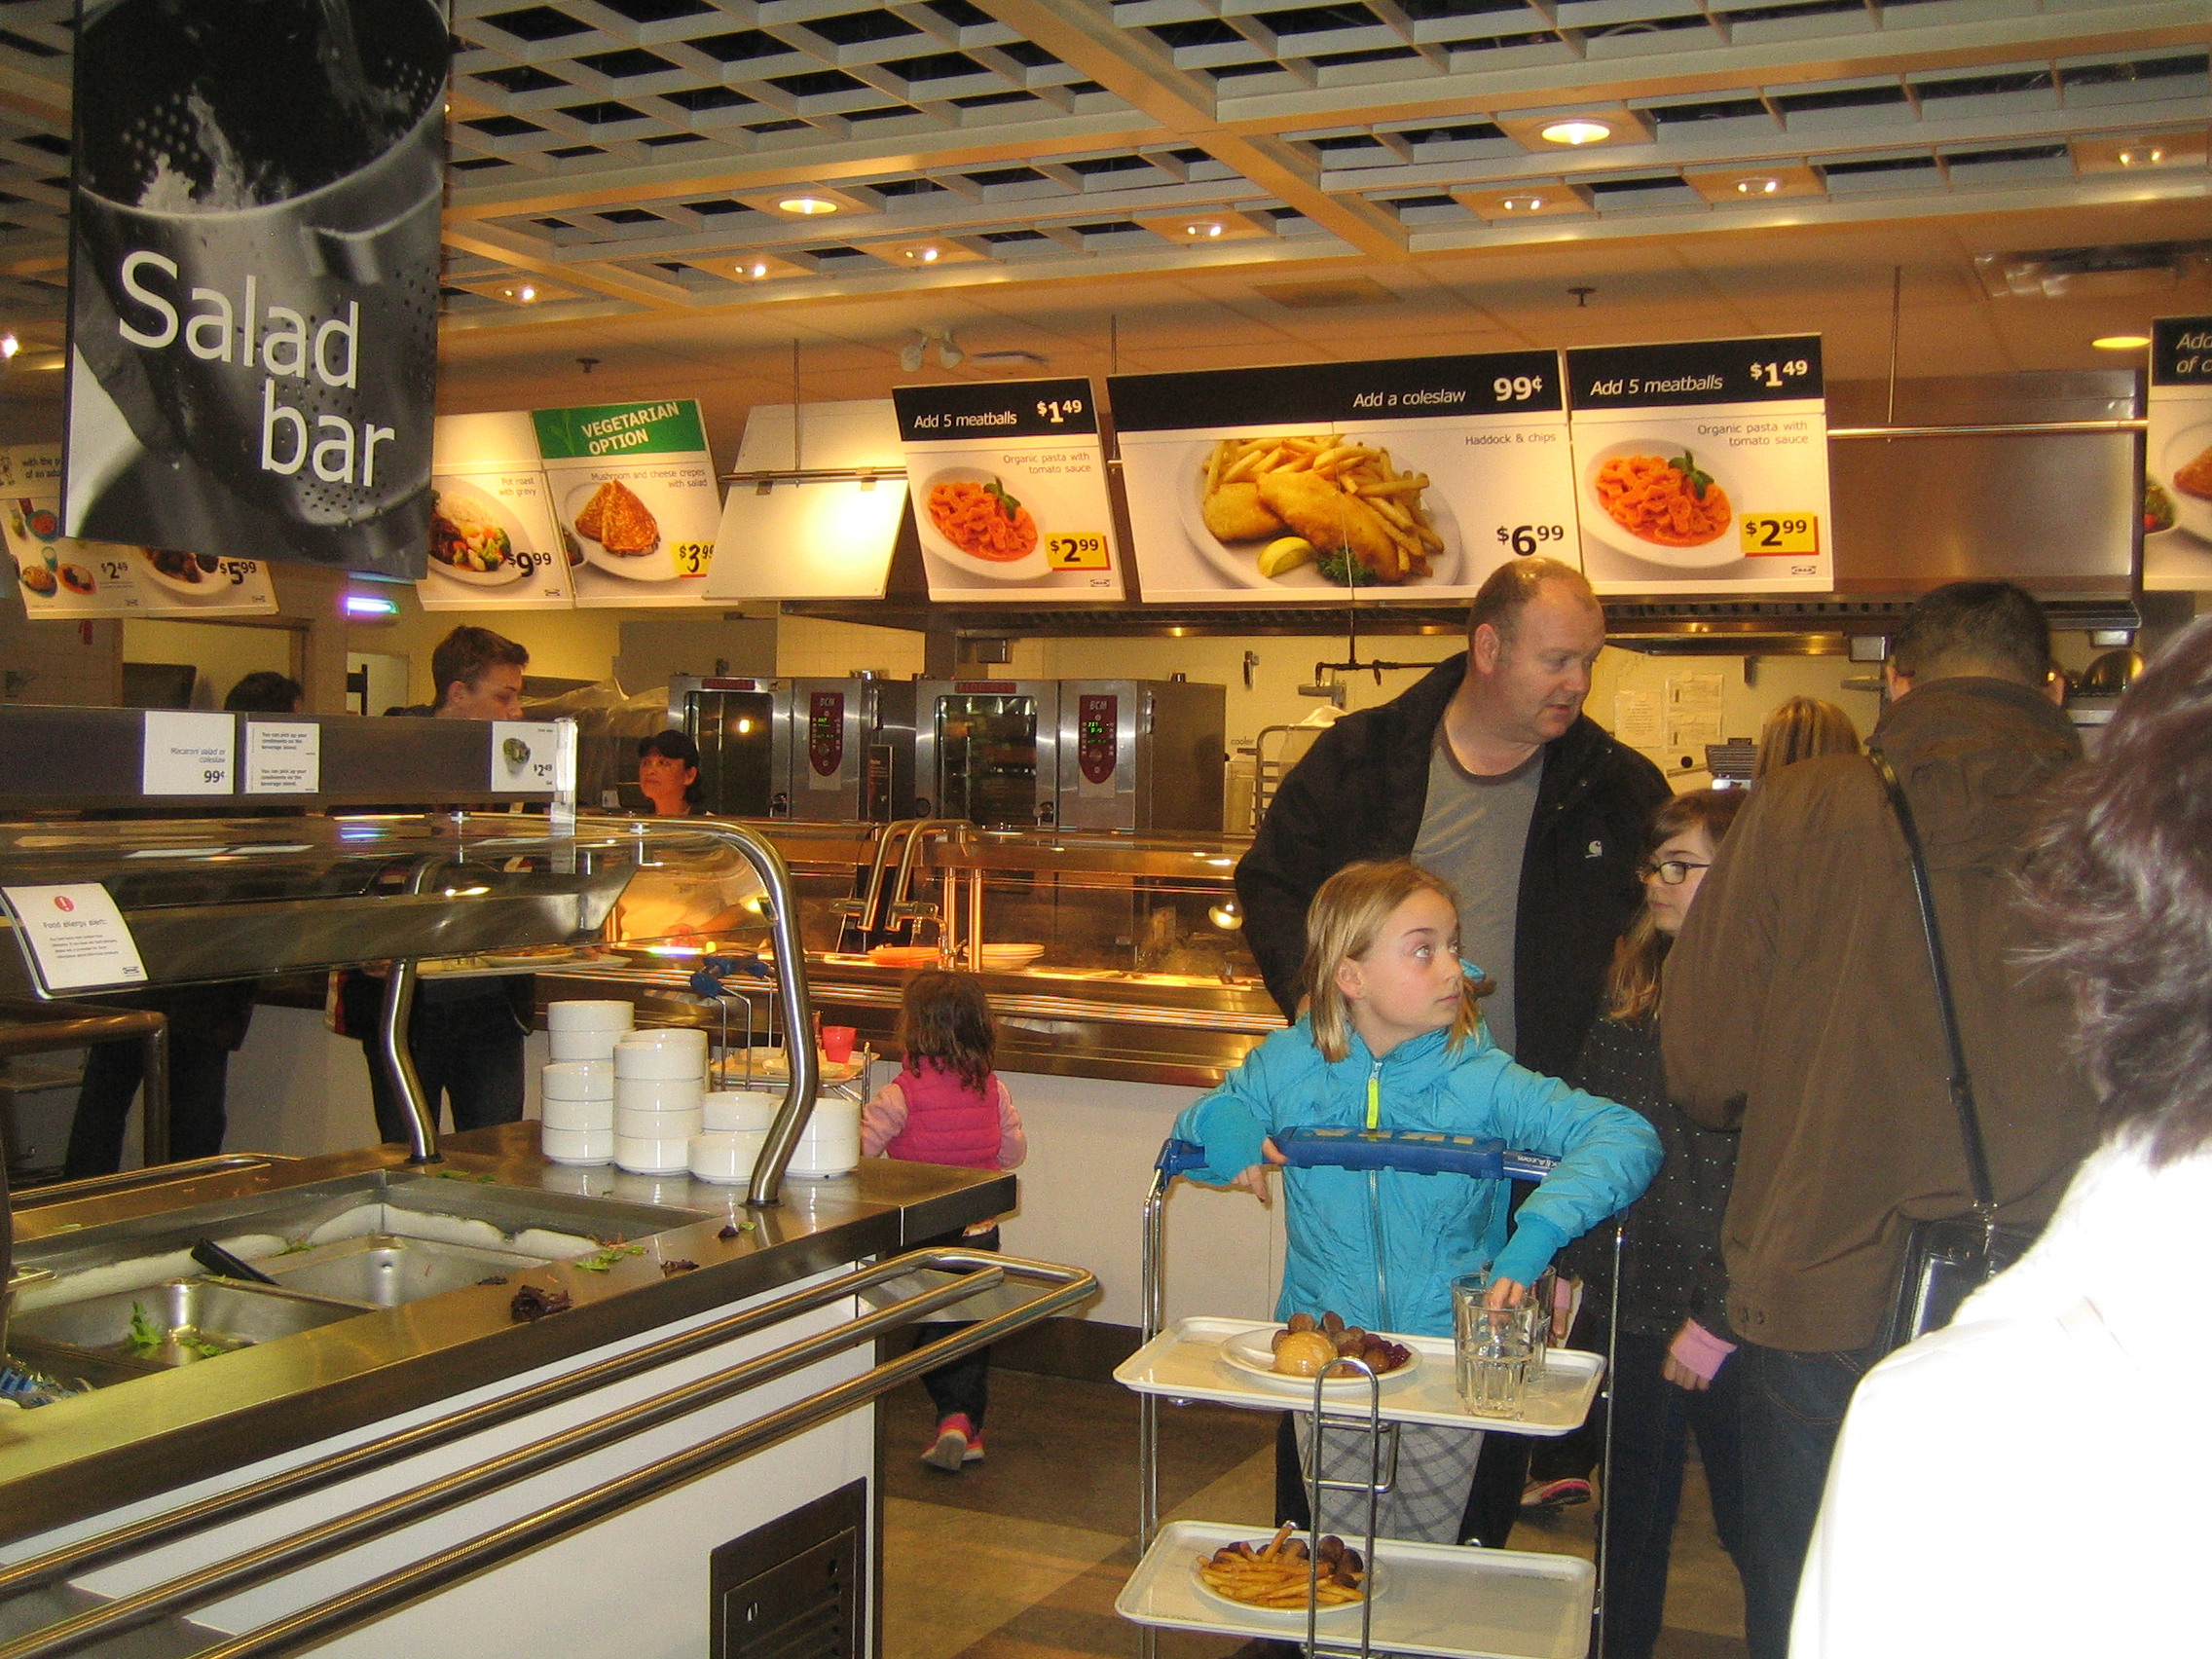 File:IKEA Restaurant in Coquitlam.jpg - Wikimedia Commons